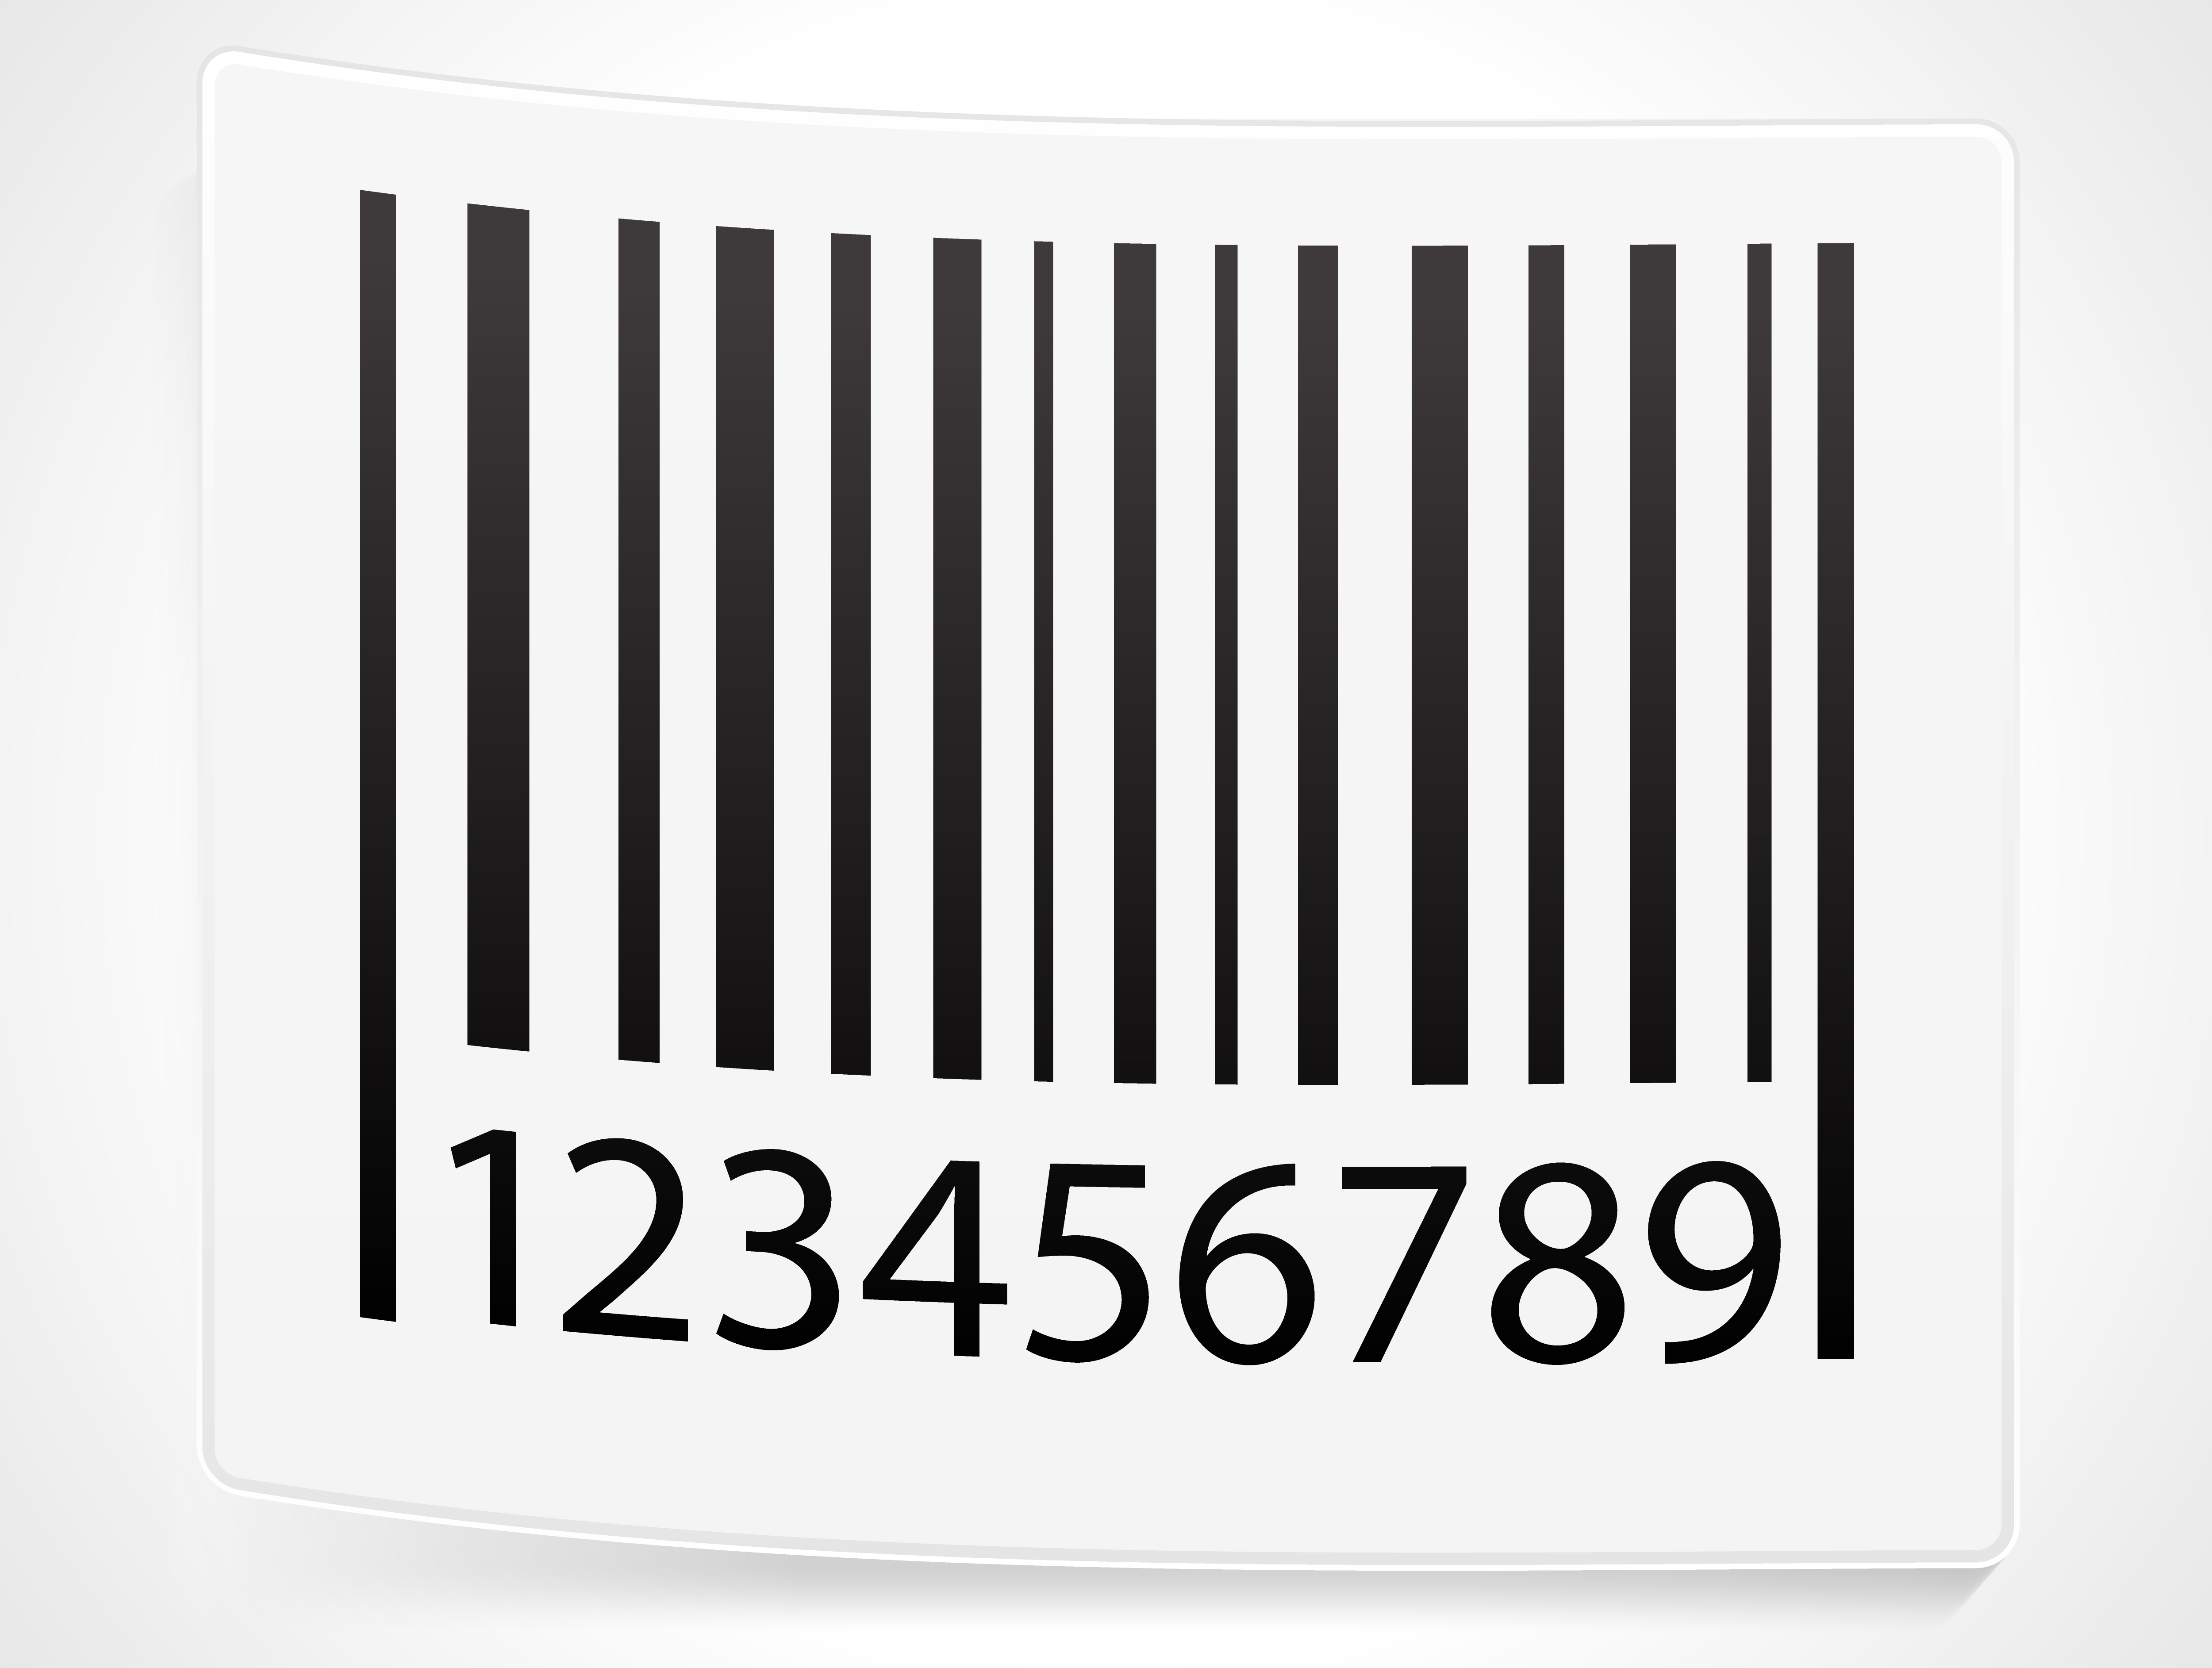 Barcode scanner types - How to choose the right one?